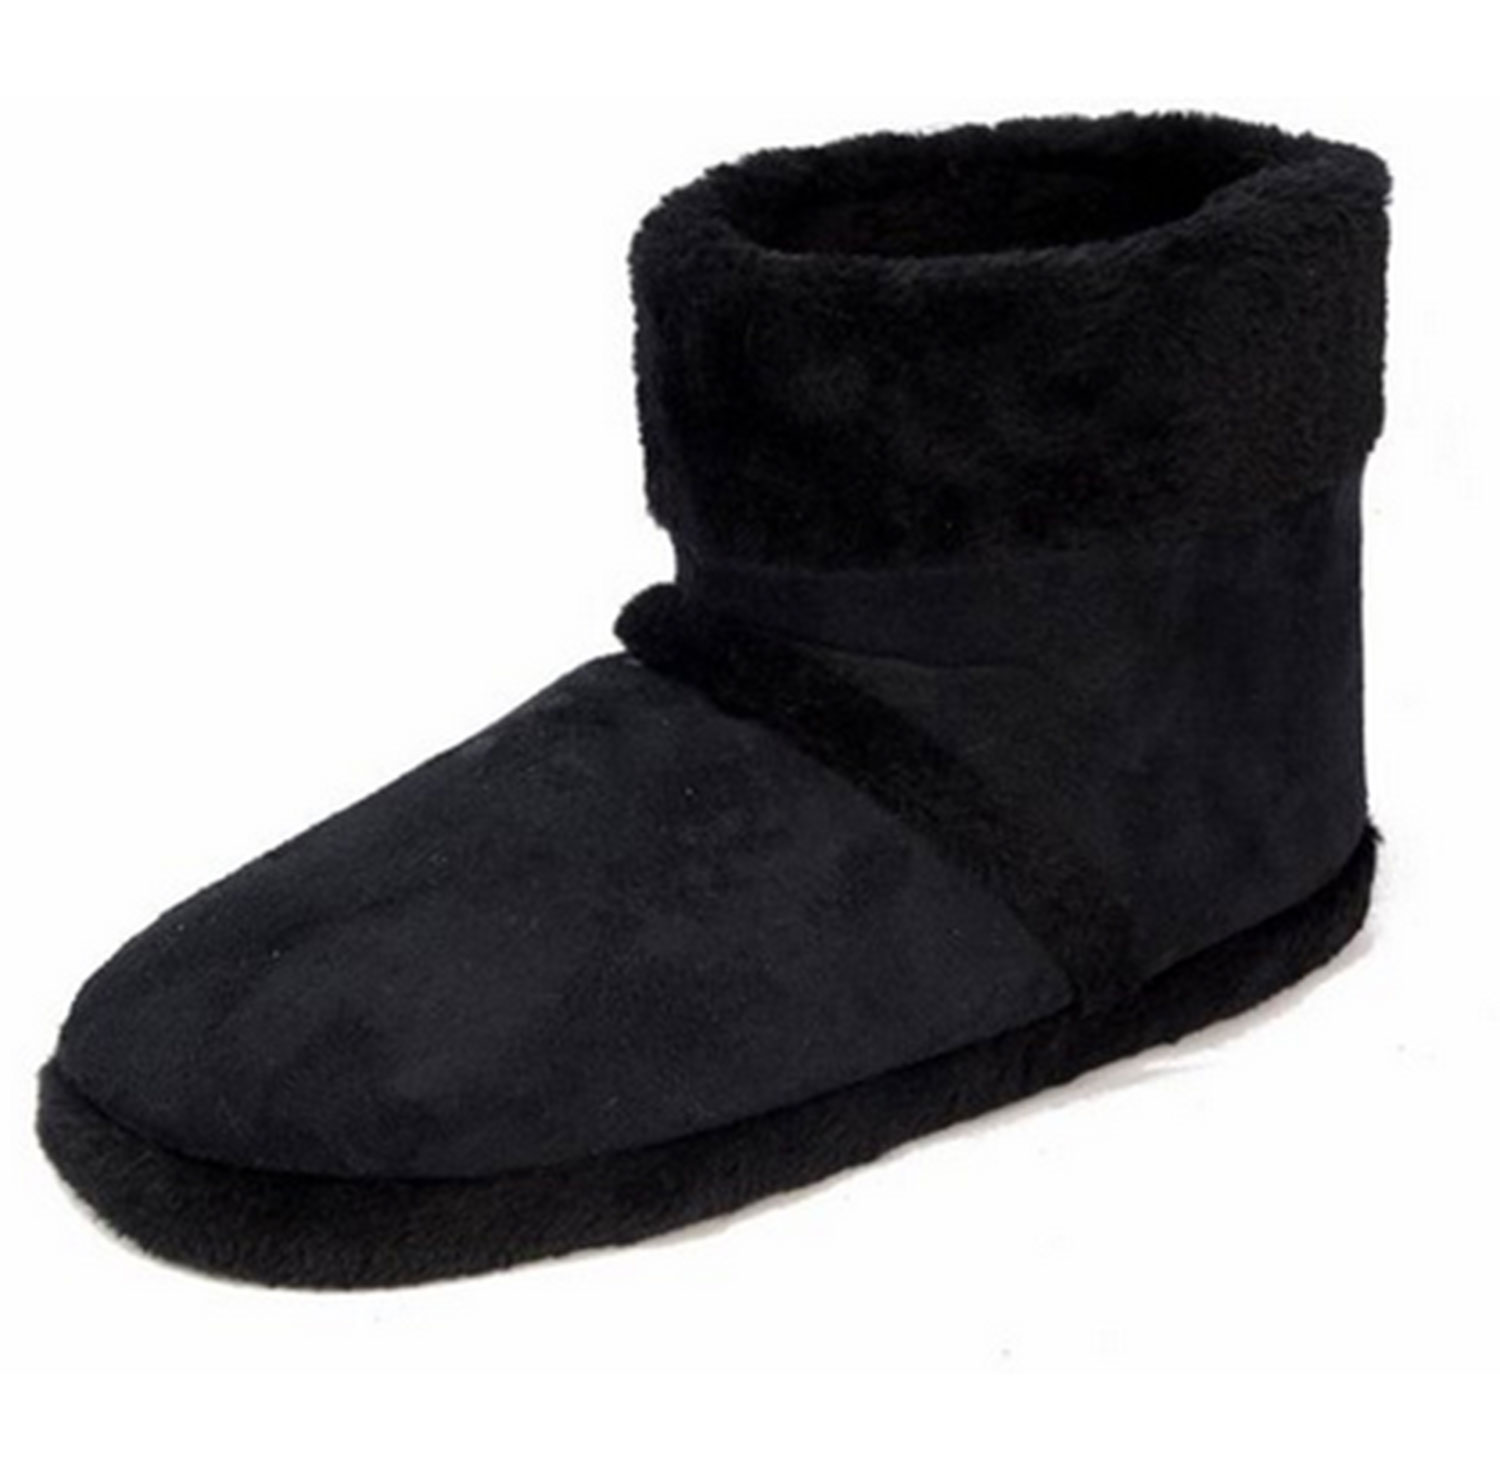 mens dunlop boots new slip on warm luxury faux fur lined